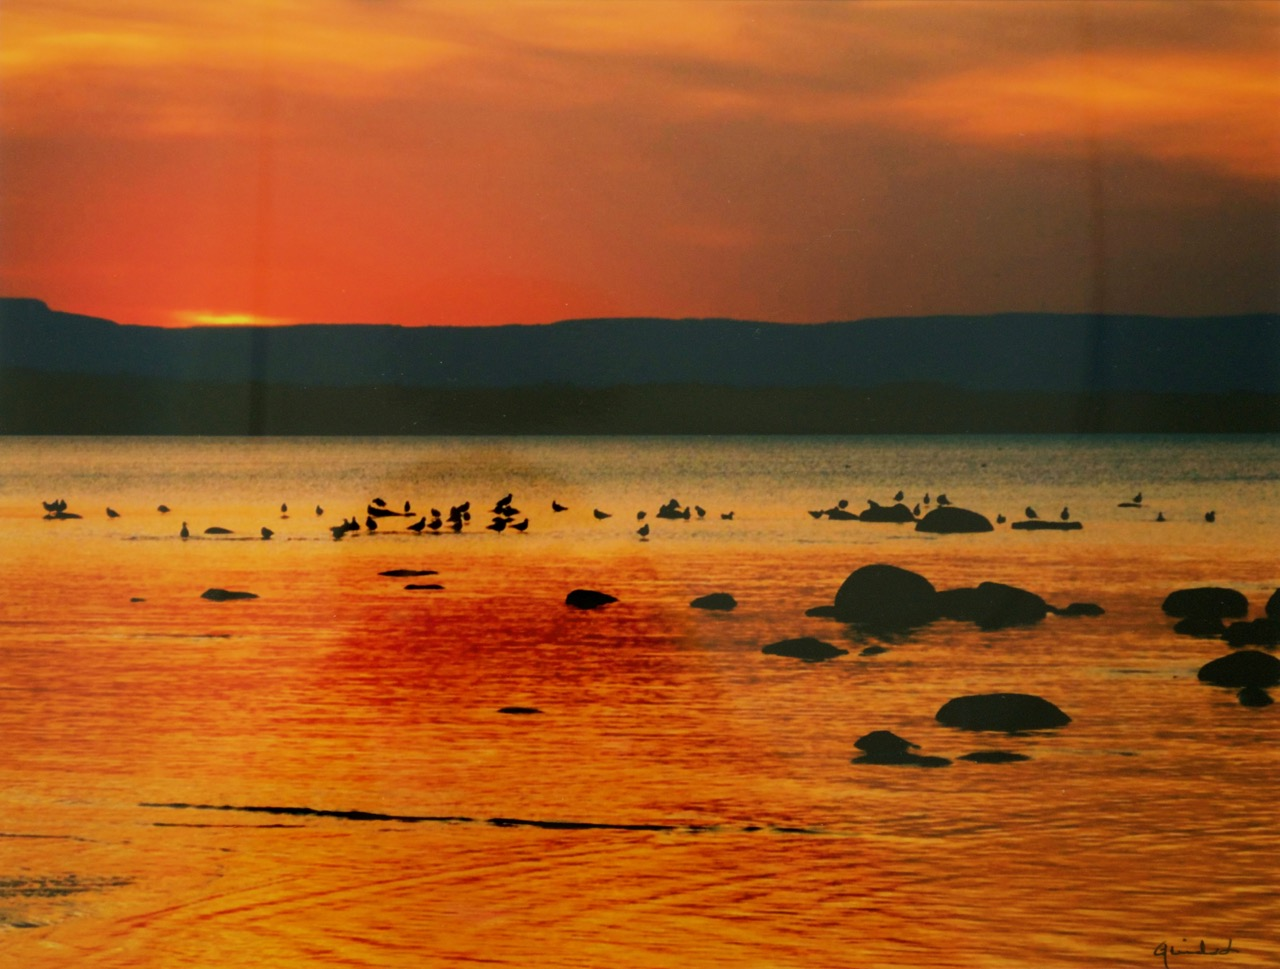 Sunset 2 - Wasaga Beach - 21